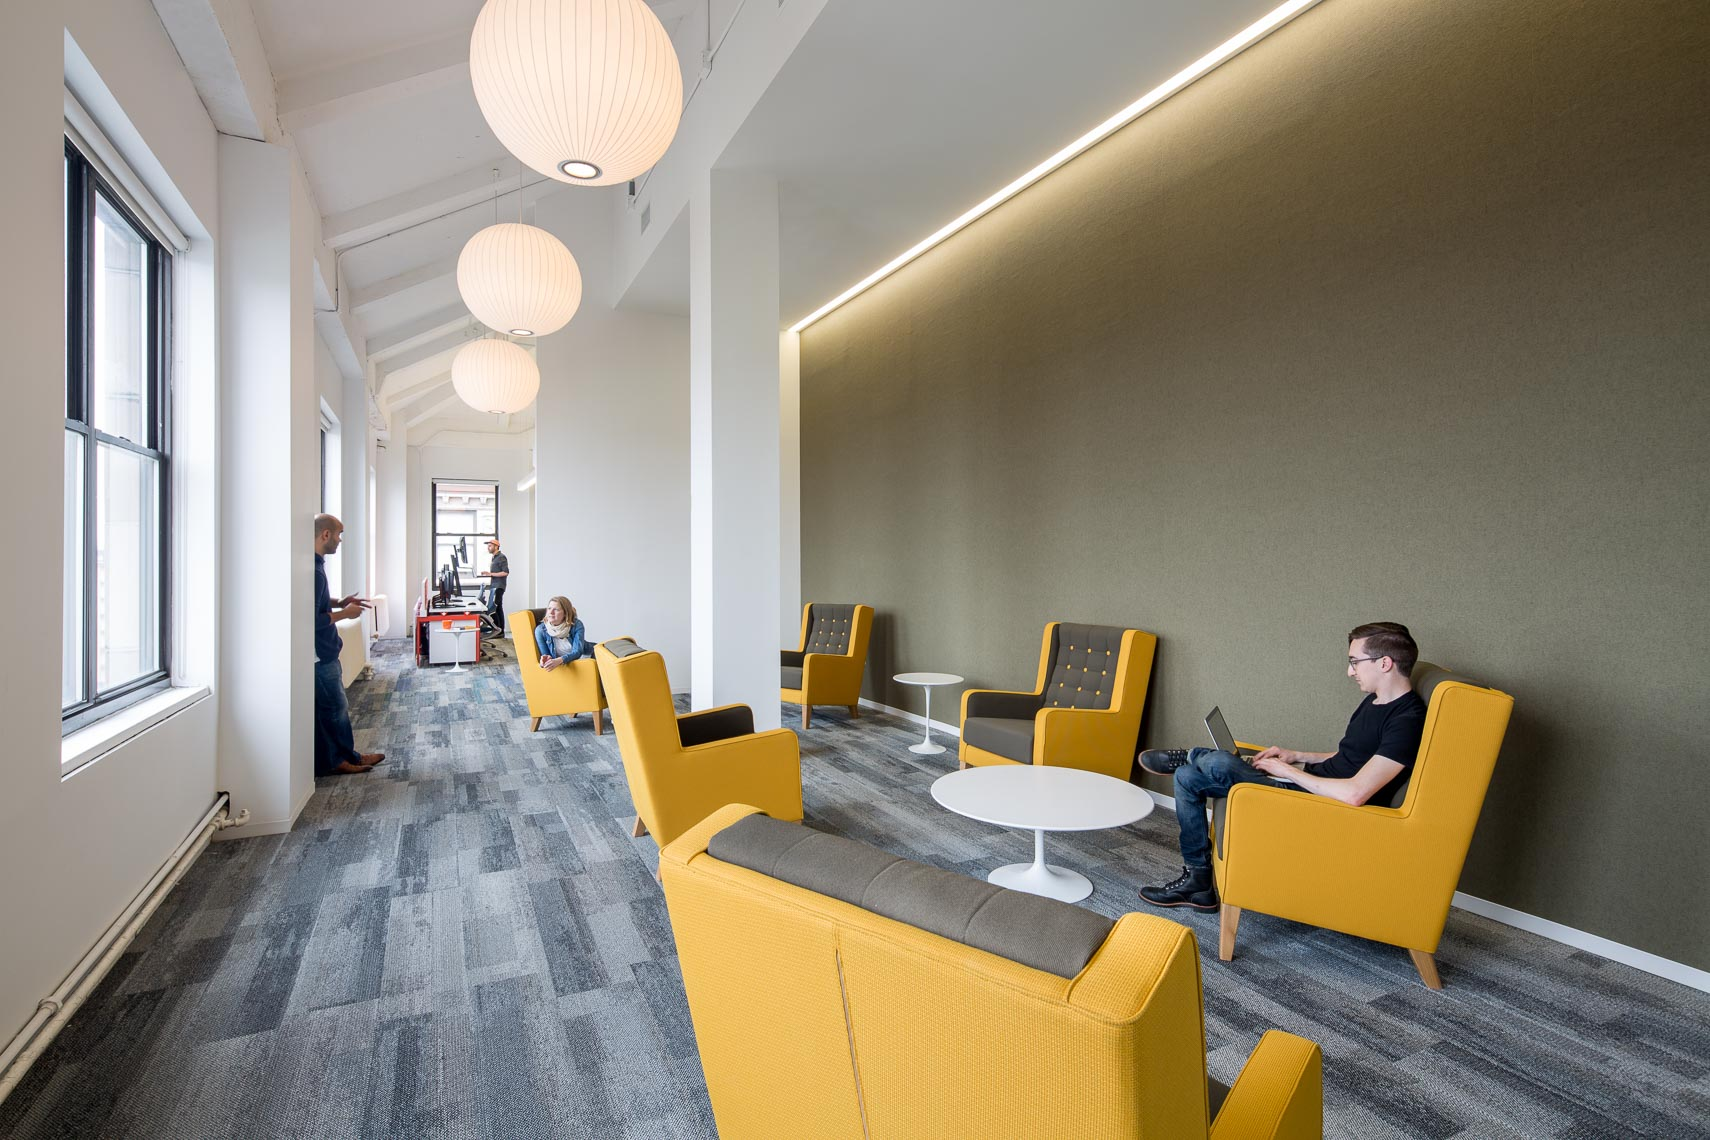 Quiet area with yellow seating in a modern office